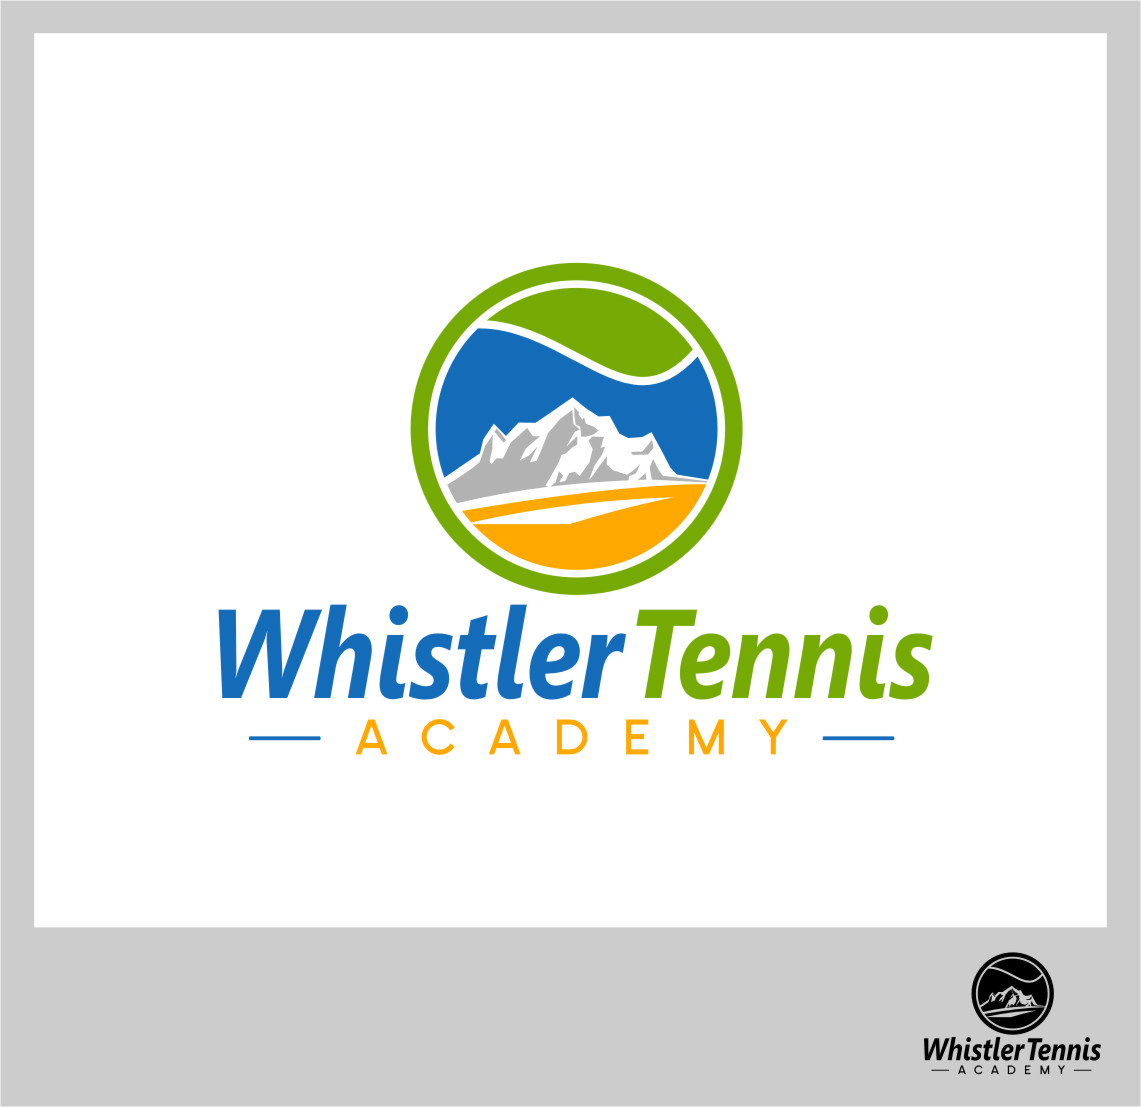 Logo Design by Ngepet_art - Entry No. 204 in the Logo Design Contest Imaginative Logo Design for Whistler Tennis Academy.